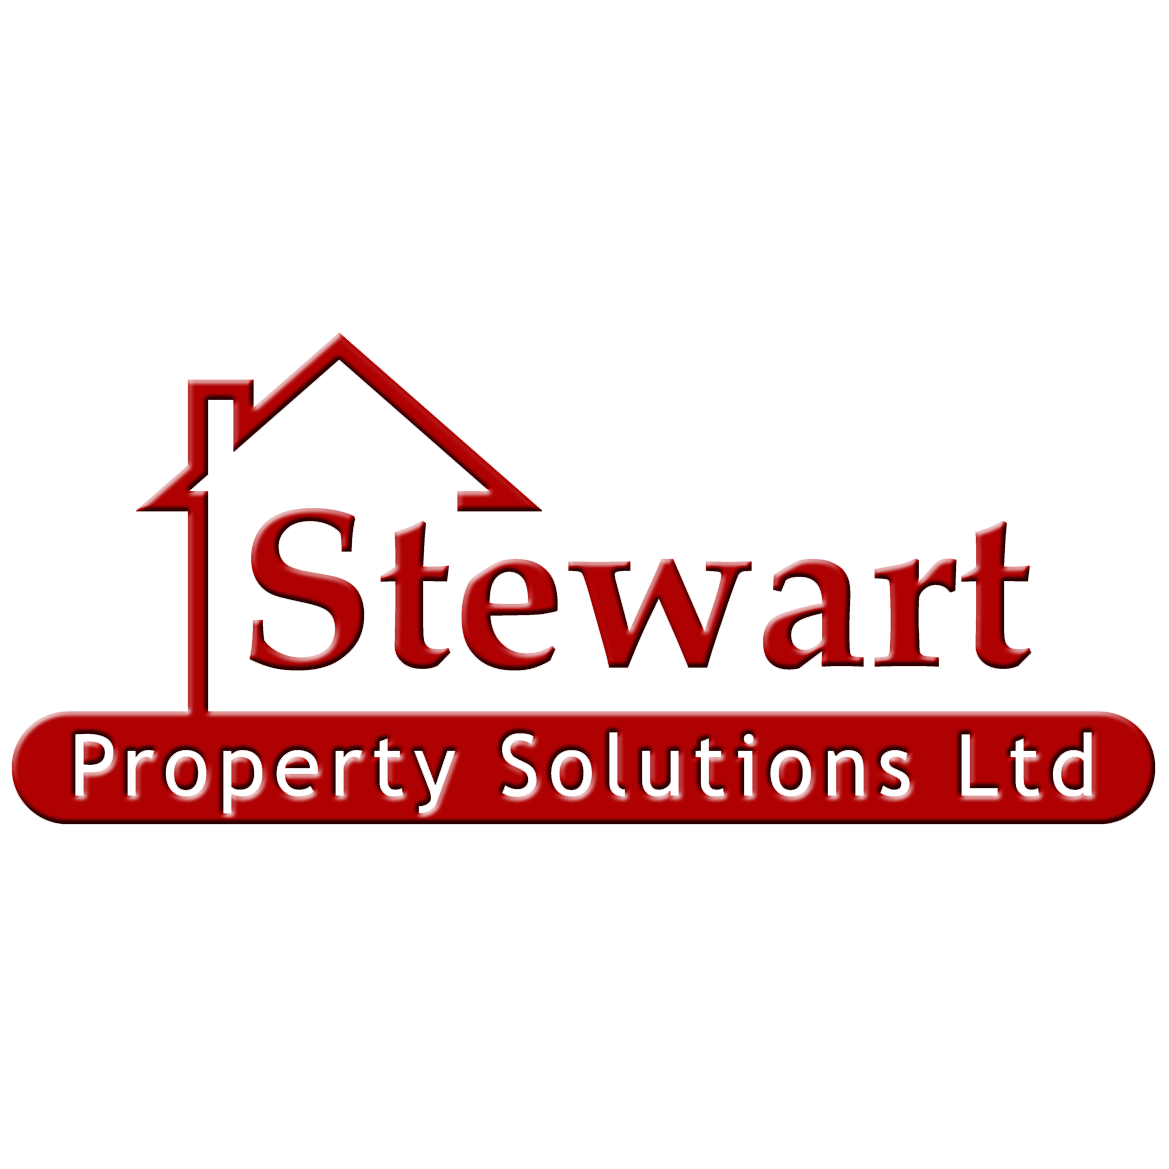 Stewart Property Solutions Limited